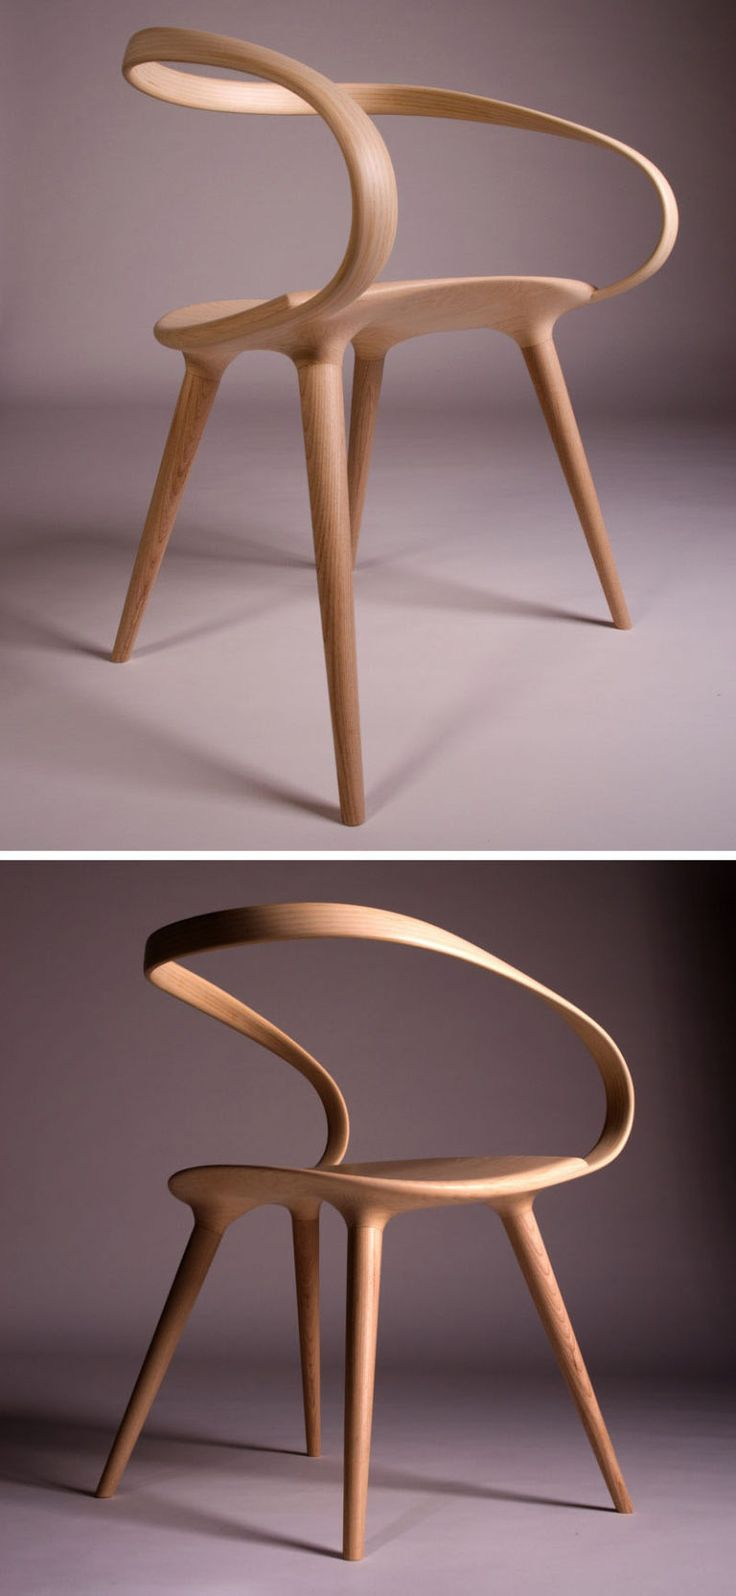 Furniture Design Wood wood chair - clubdeases